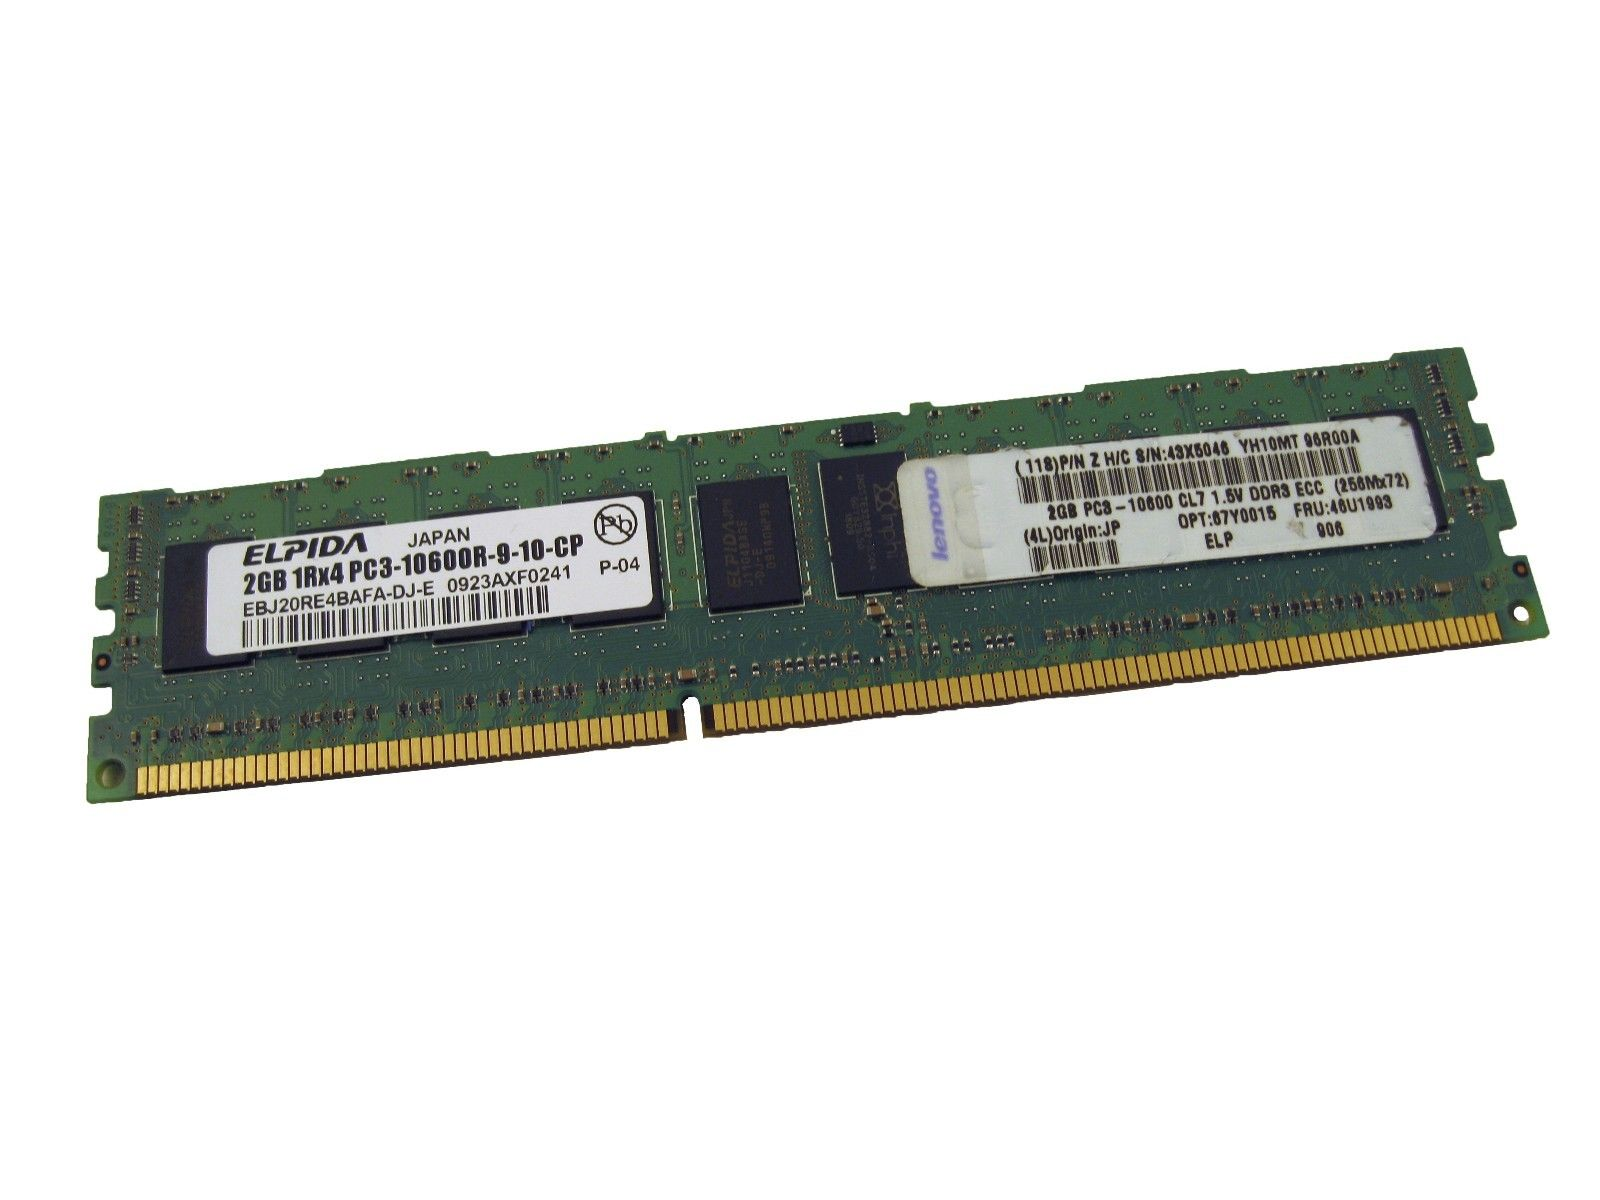 Elpida EBJ20RE4BAFA-DJ 2GB DDR3 PC3-10600 1Rx4 Server Memory